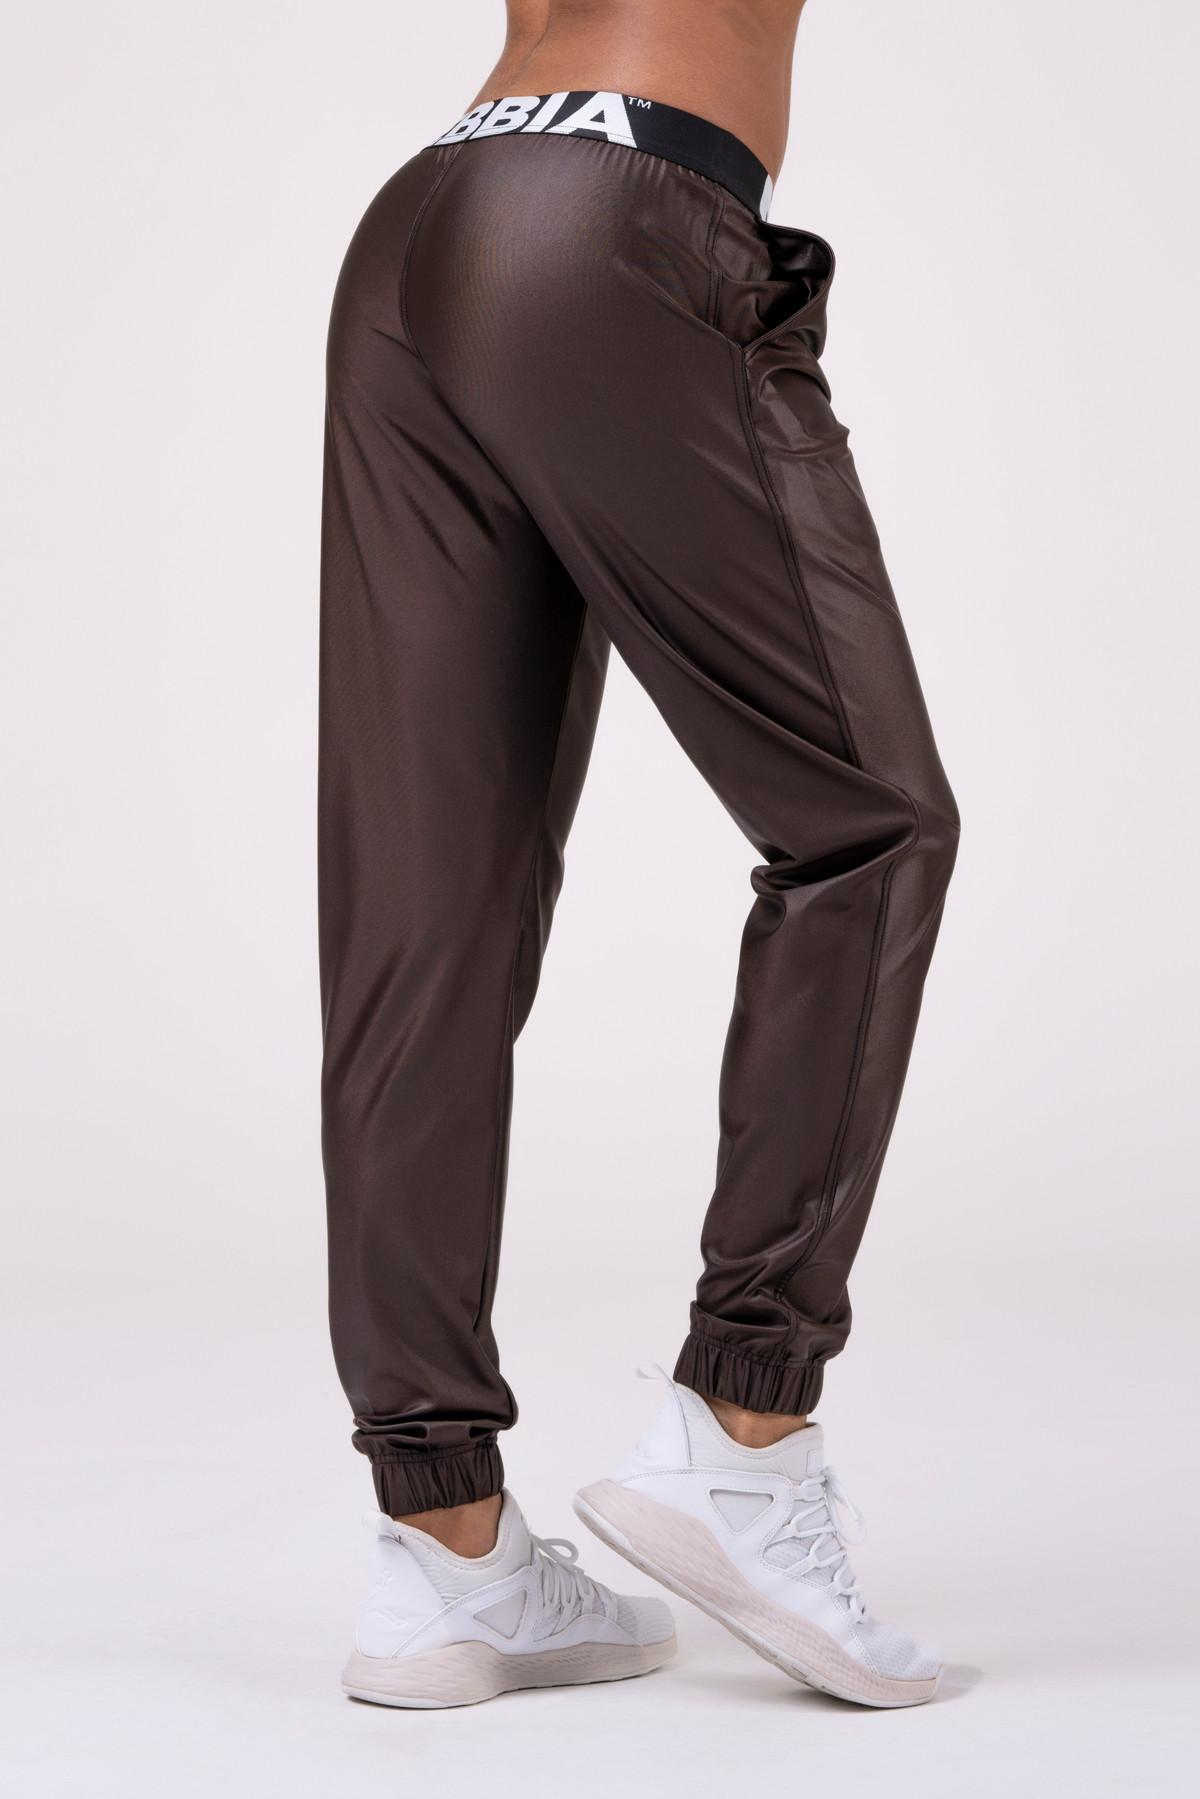 Sport Drop Pants N529 nebbia fitness